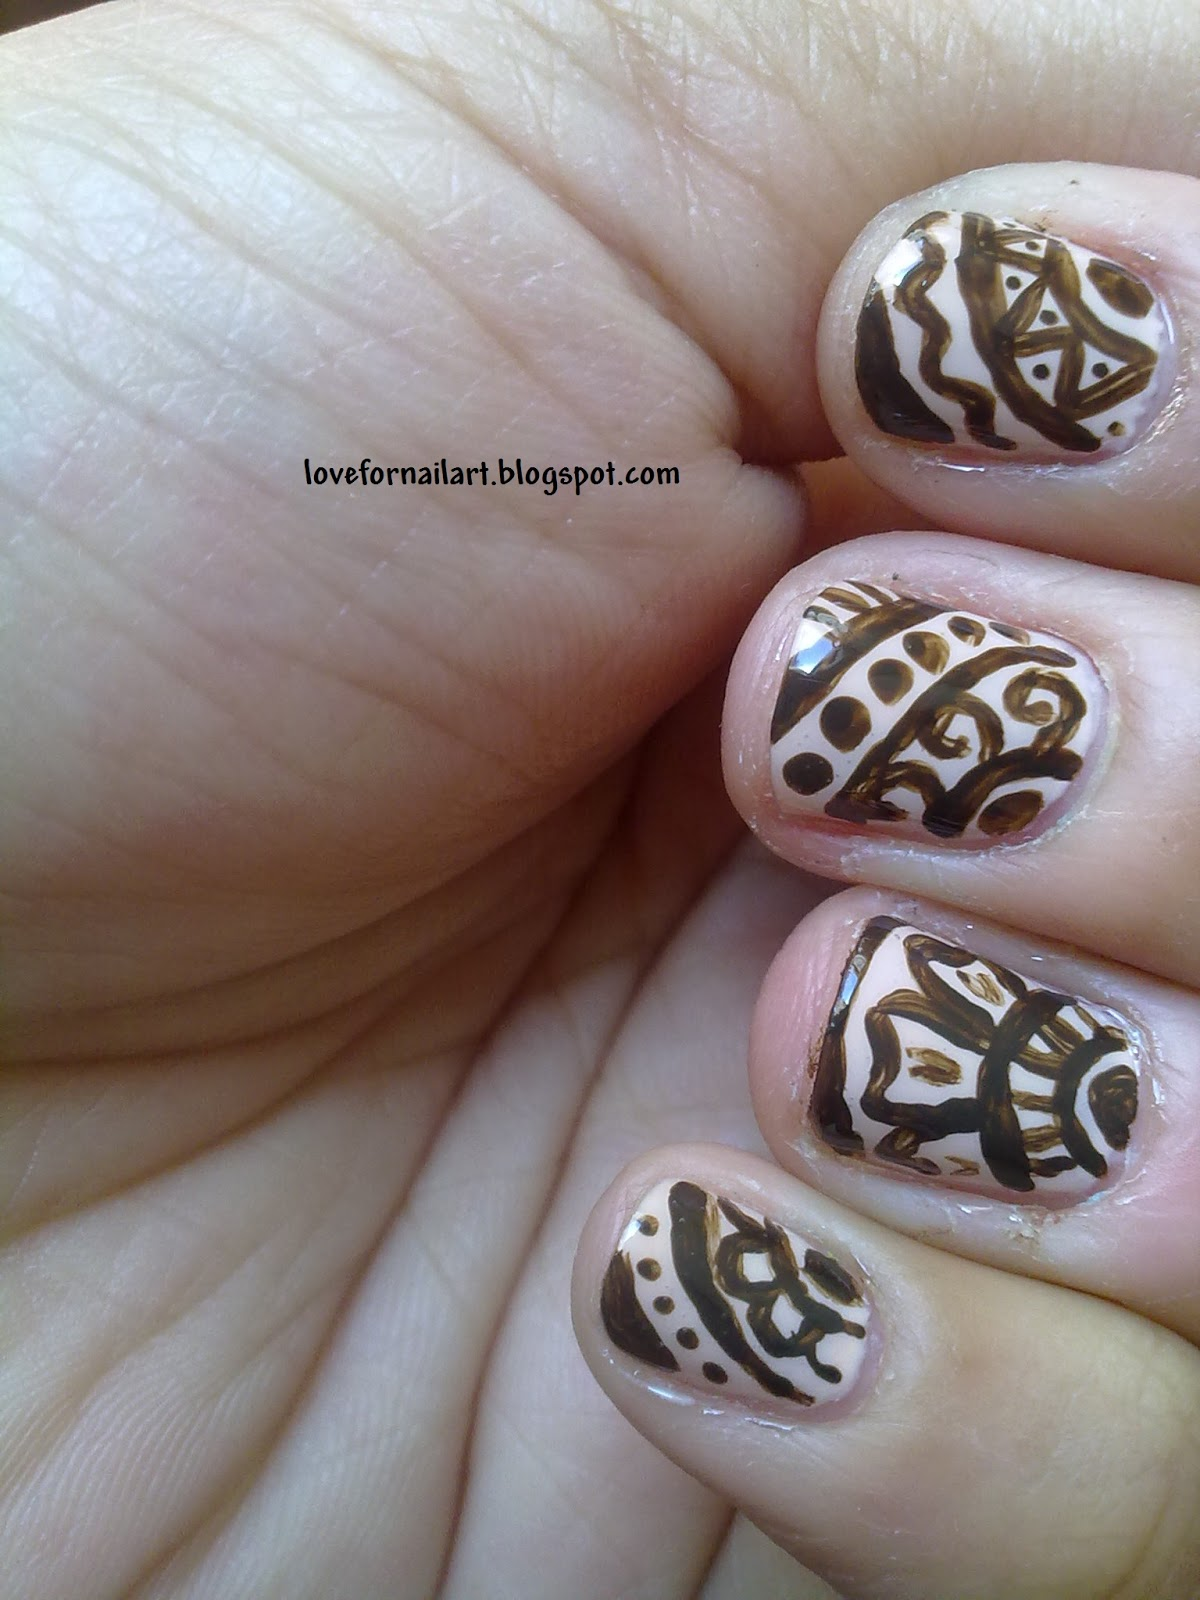 Mehndi Designs For Nails : Love for nail art mehndi henna